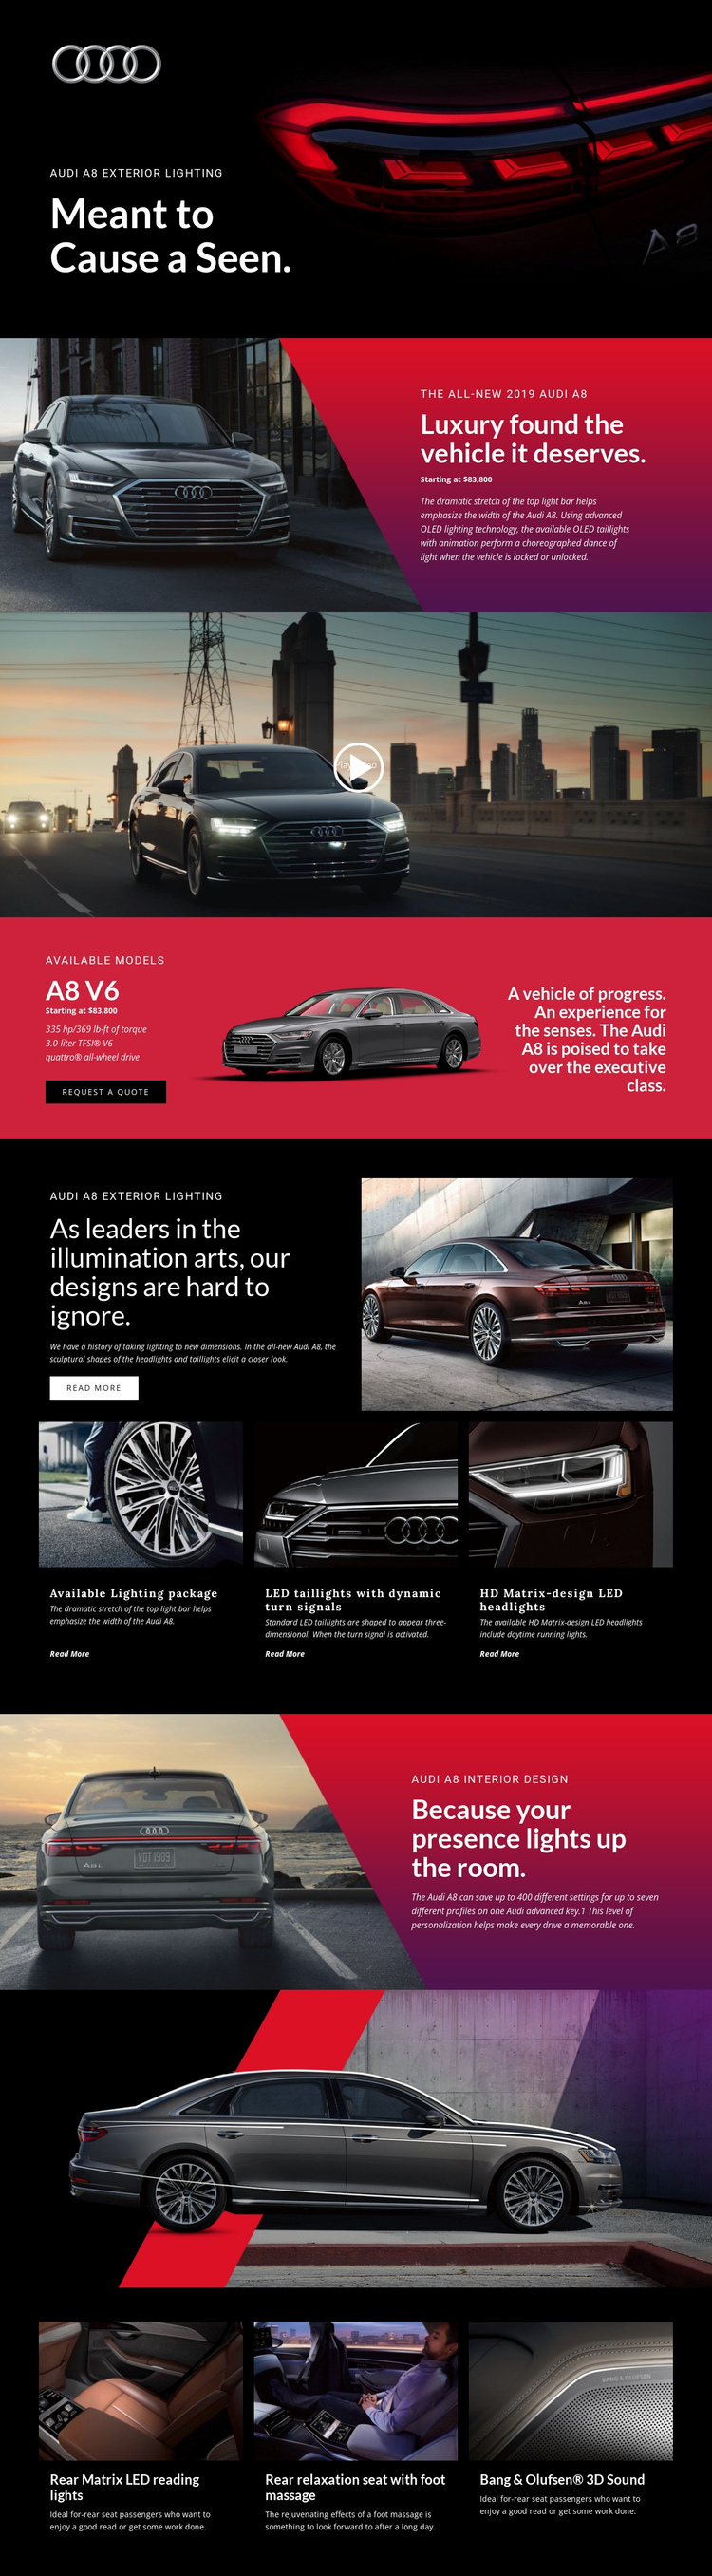 Audi luxury cars Website Builder Software